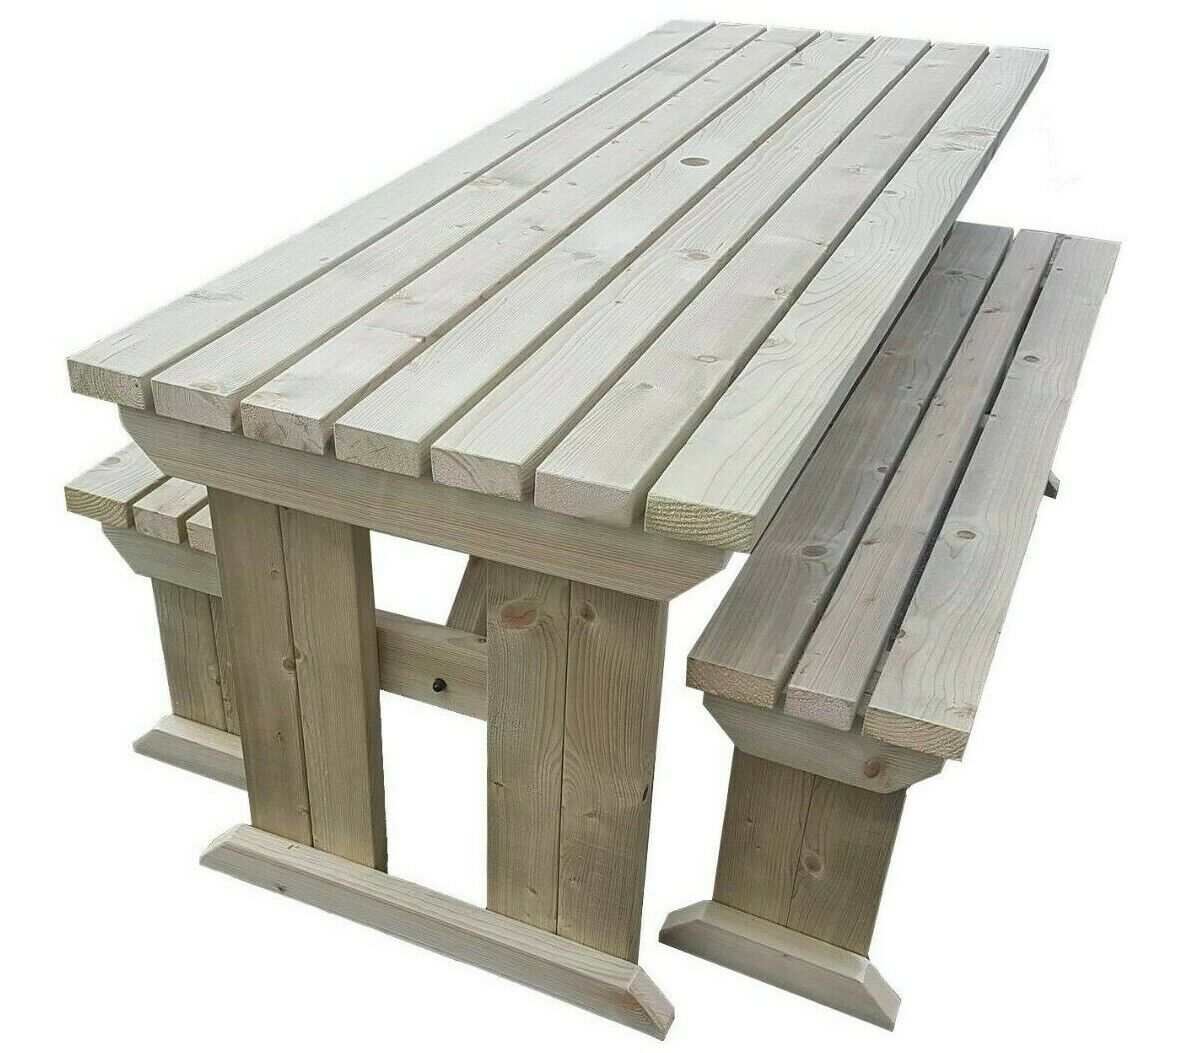 Garden Furniture - Picnic Table and Bench Set Wooden Outdoor Garden Furniture, Yews Compact